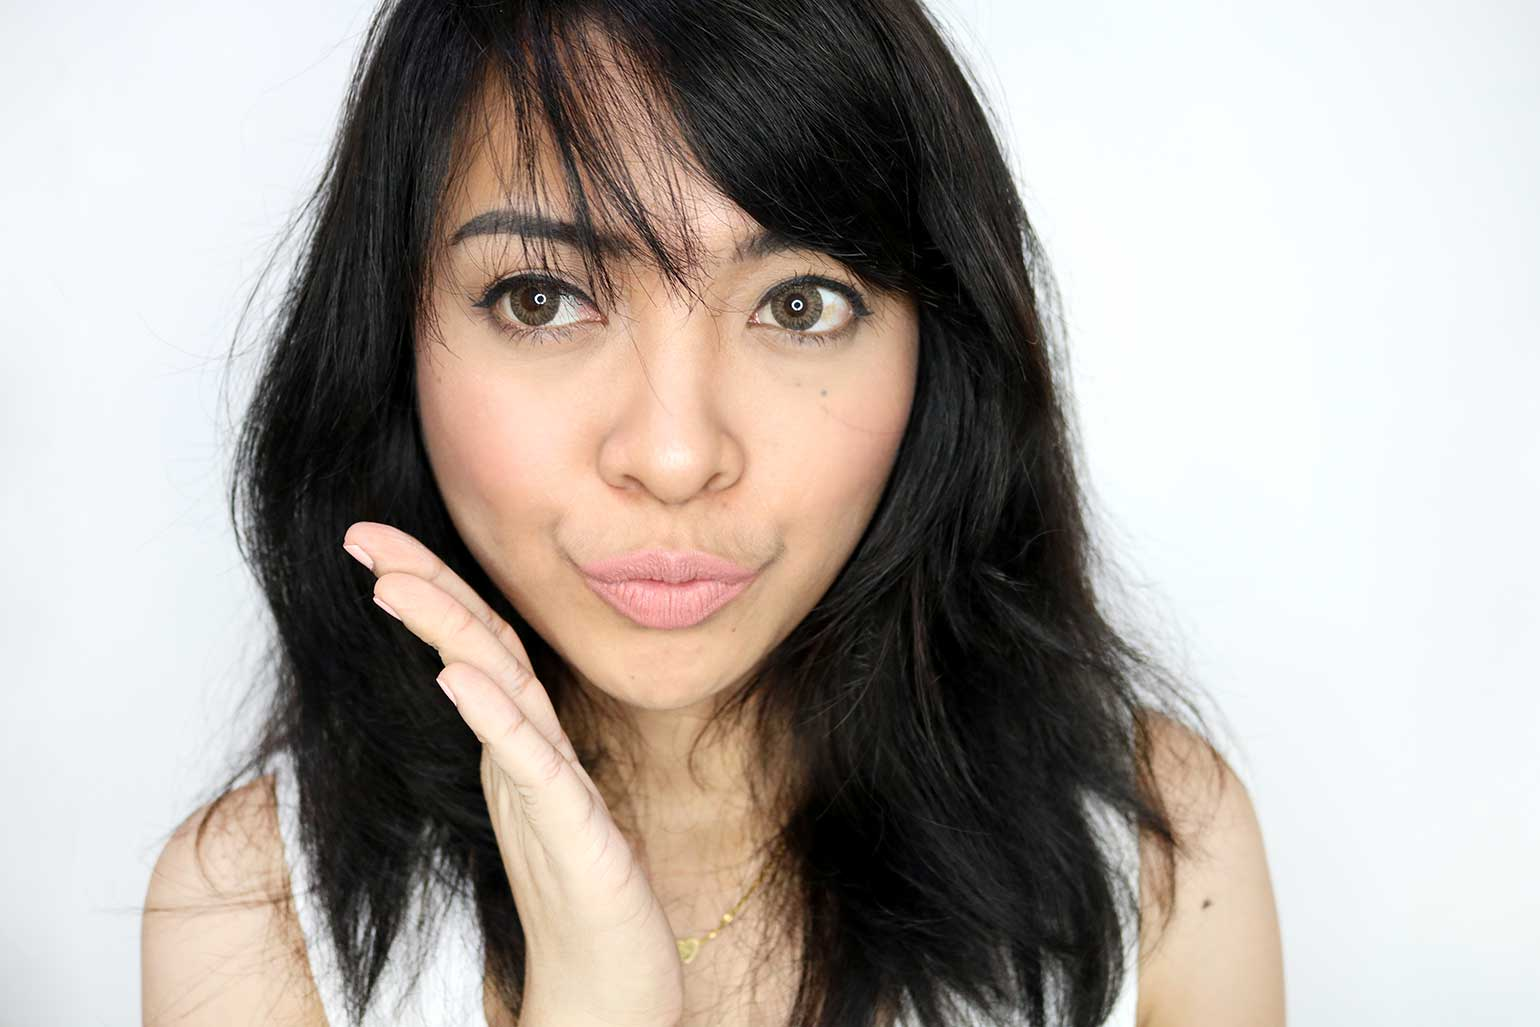 6 Maybelline Creamy Matte Brown Nudes Collection Daringly Nude Review Swatches - Gen-zel.com (c)